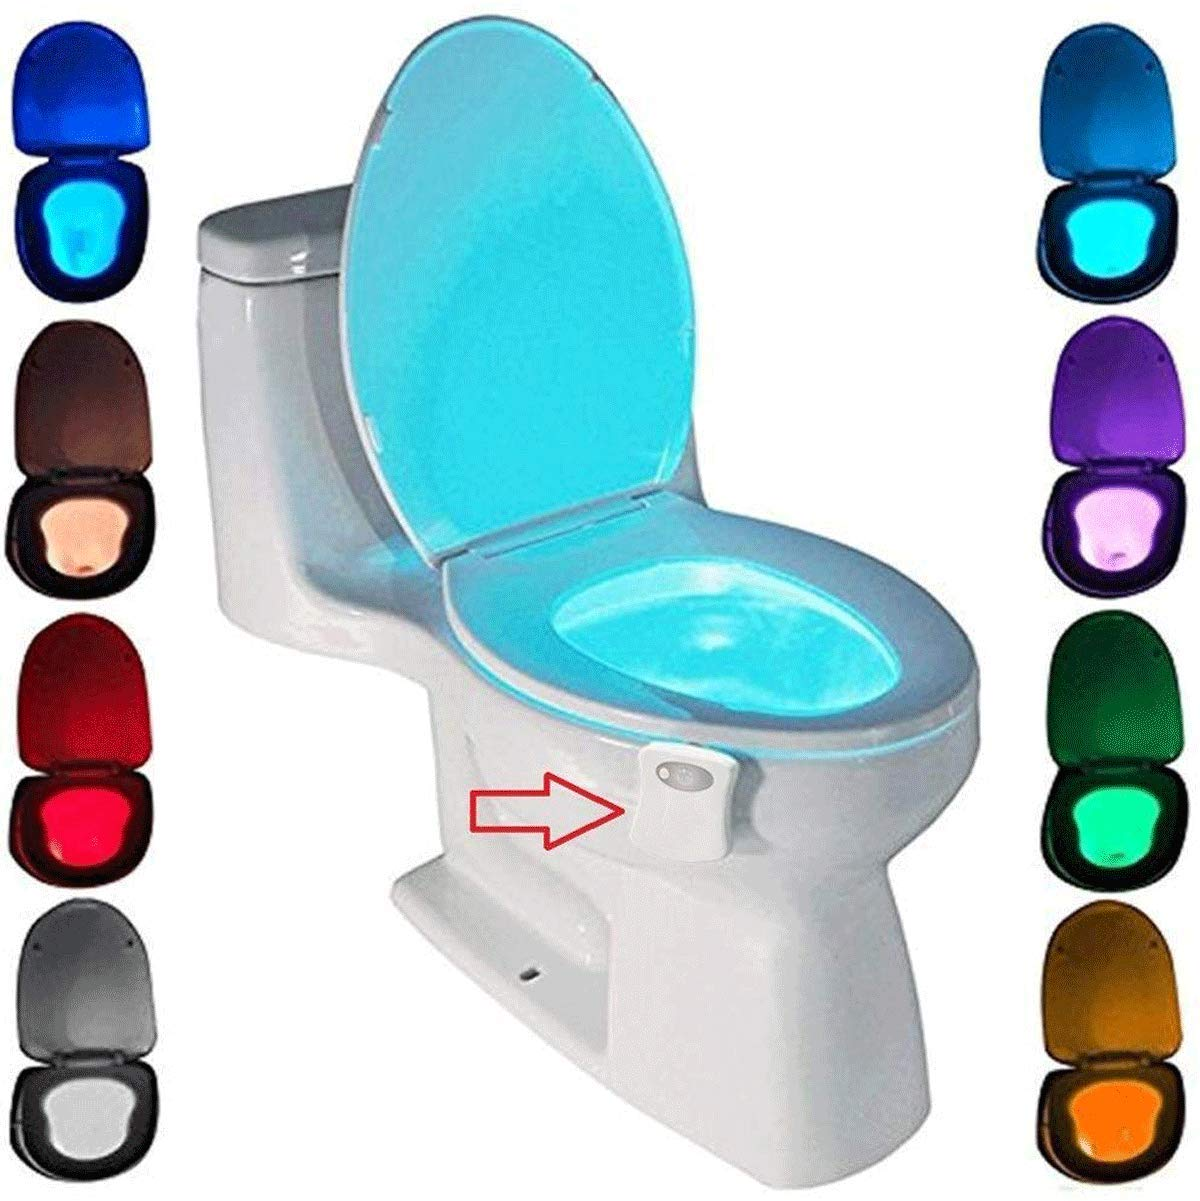 Toilet Night Light Motion Activated by ZSZT, Two Modes with 8 Color Changing, Sensor LED Washroom Night Light Fits Any Toilet